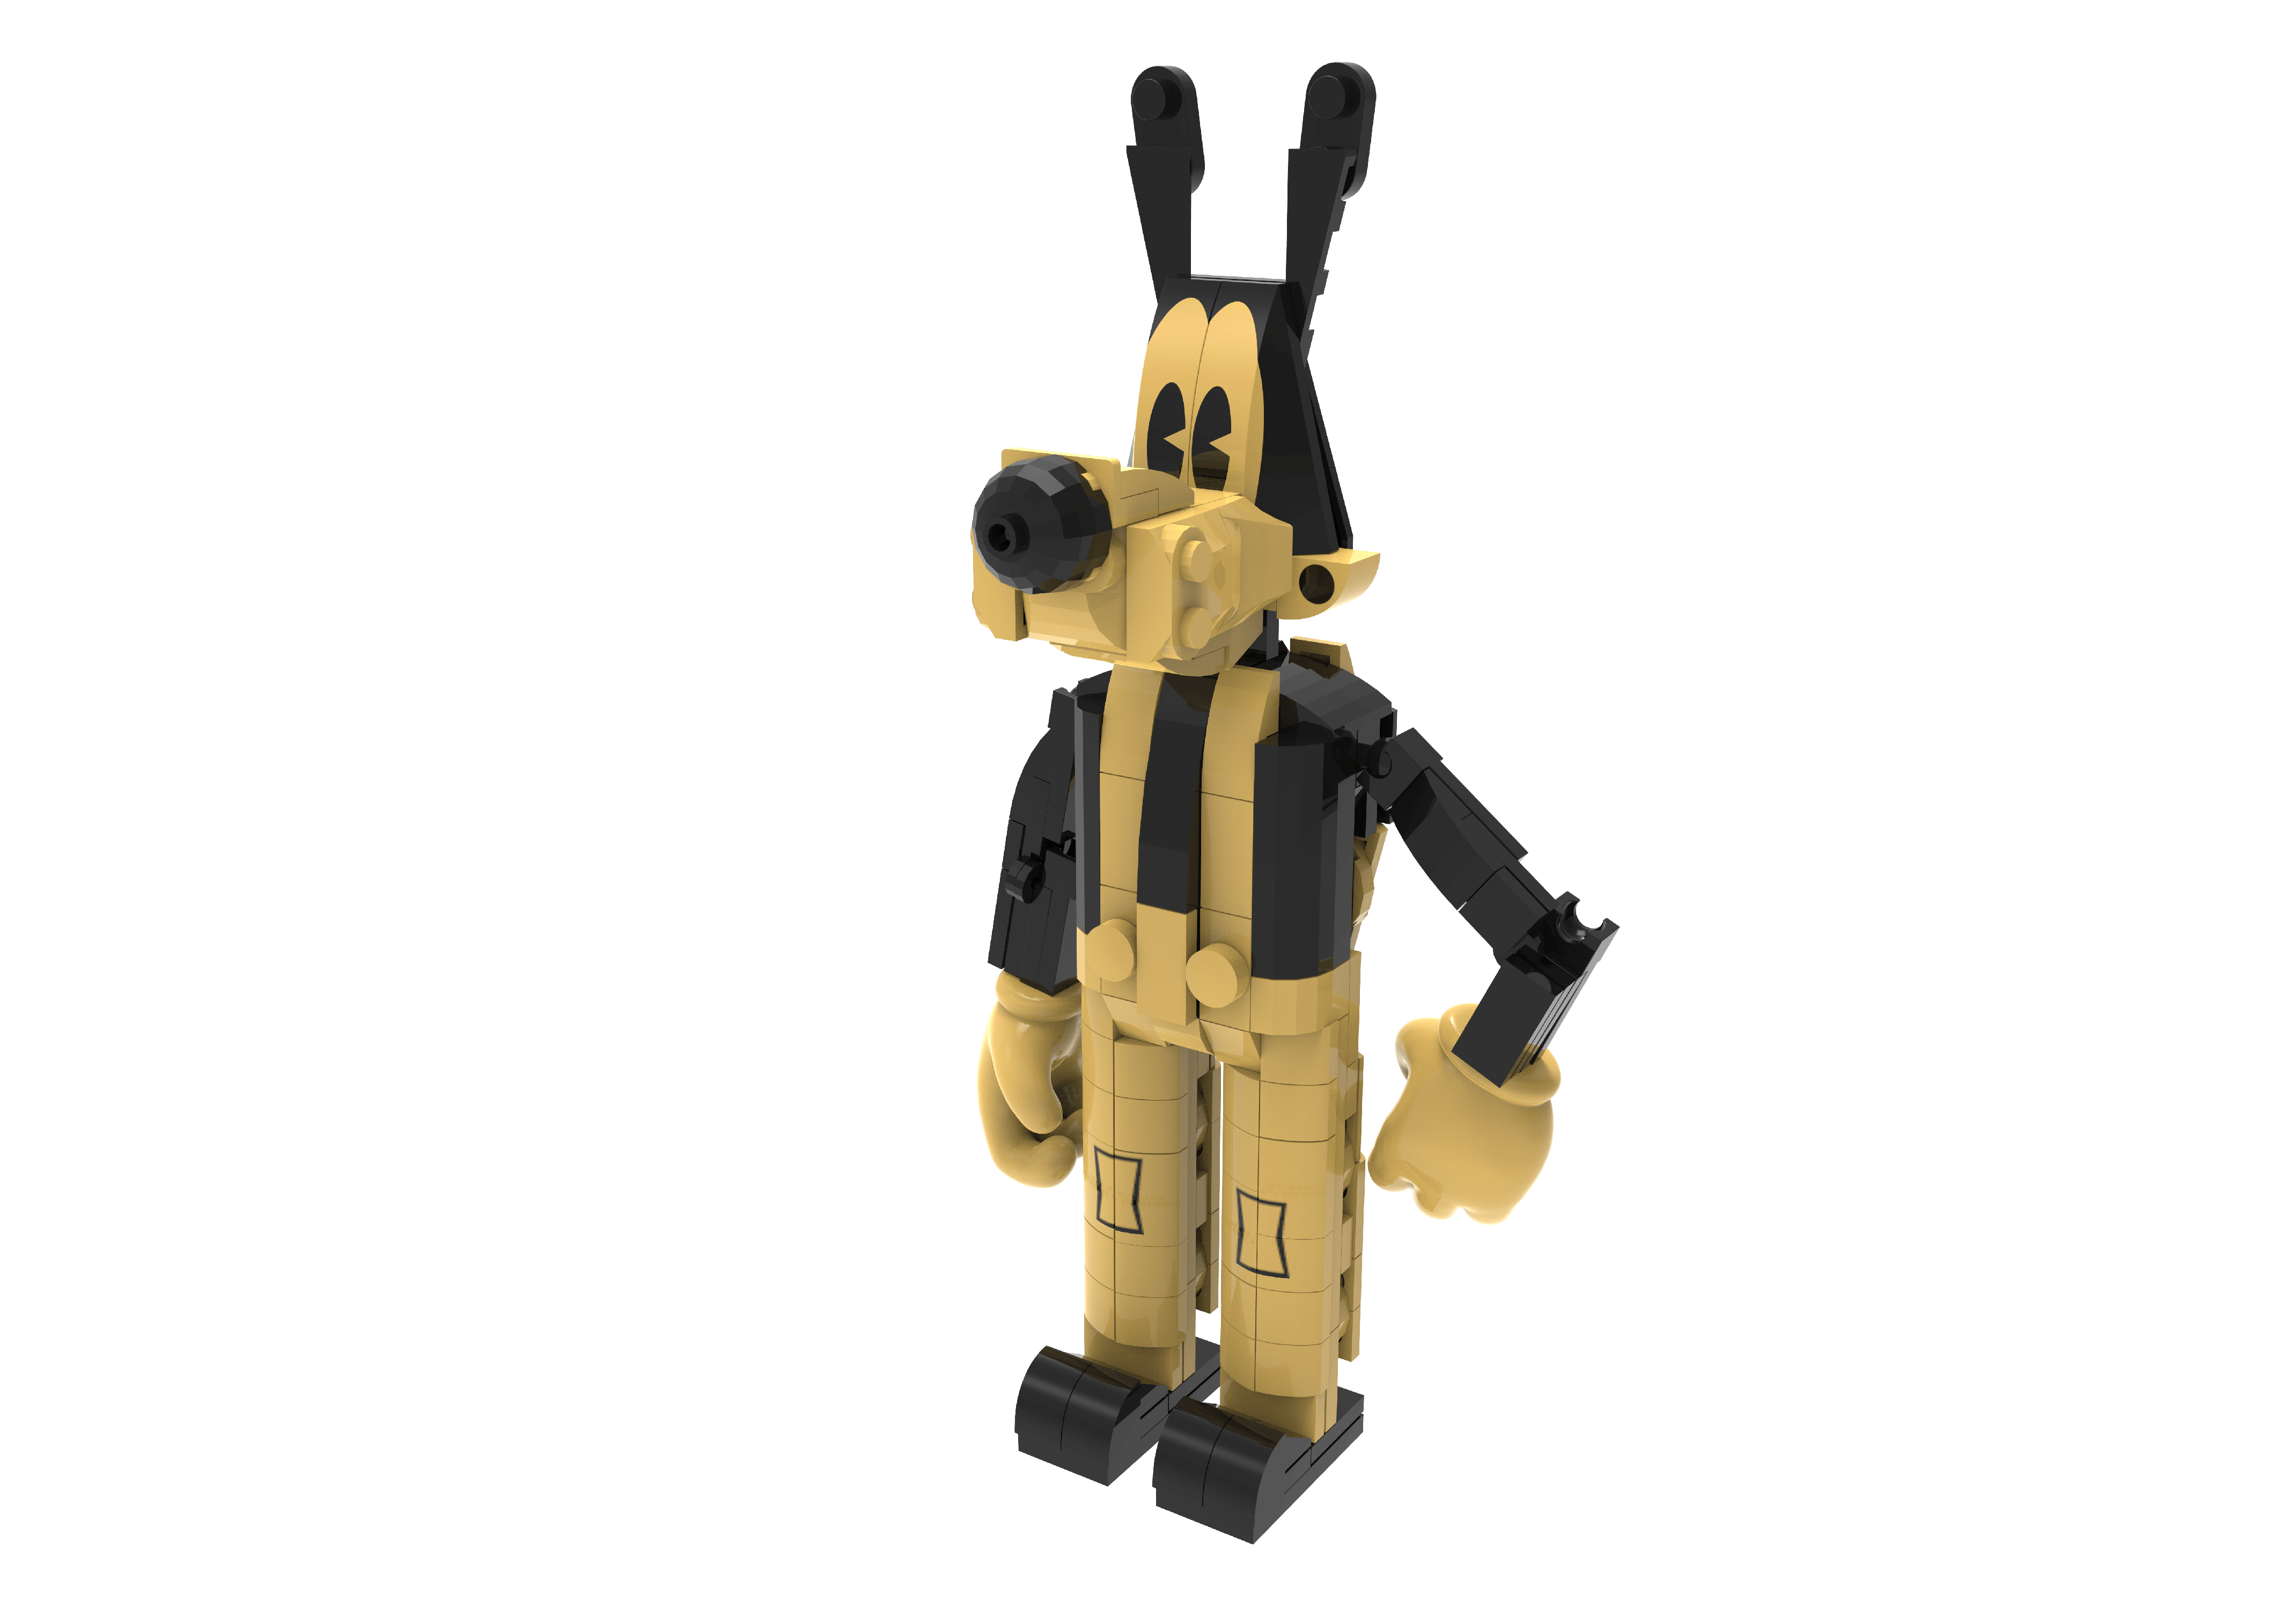 Figs Bendy 14Yrs+ Bendy And The Ink Machine Buildable Figure